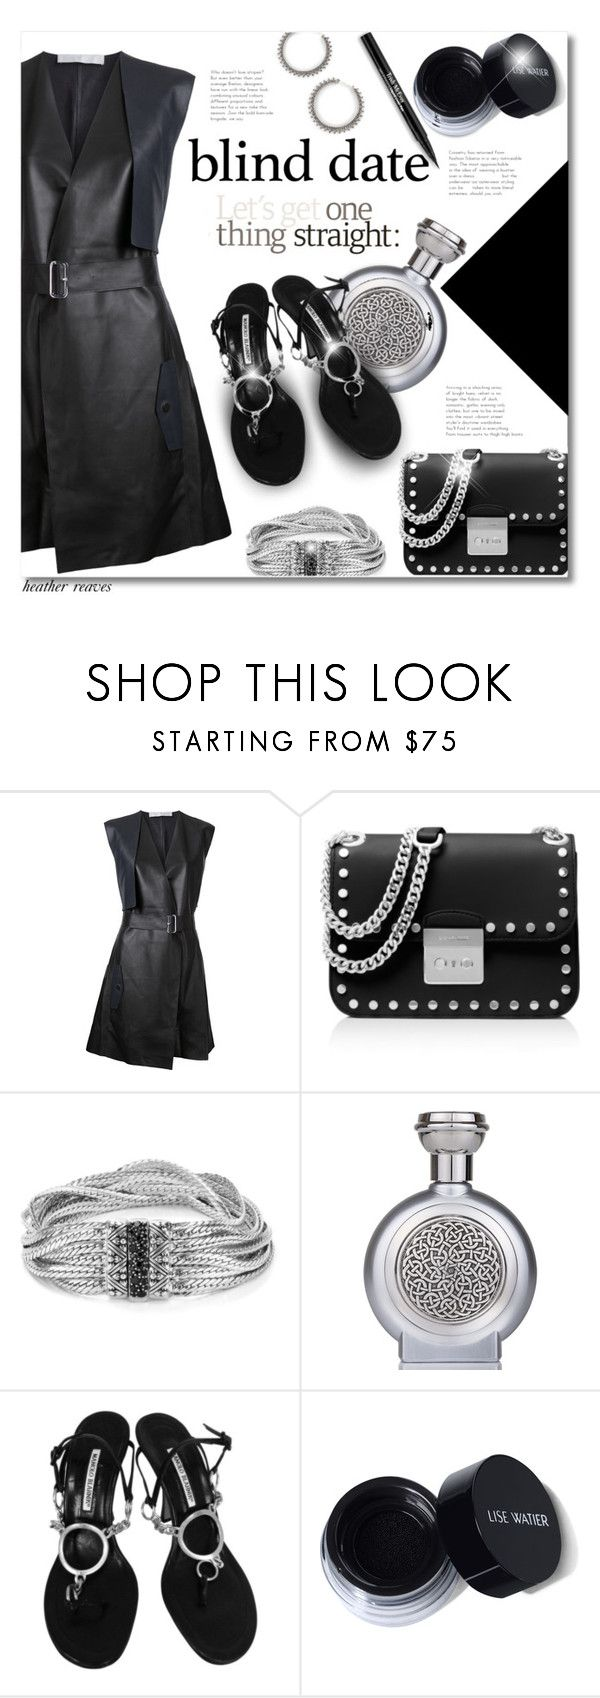 """""""Dress to Impress: Blind Date"""" by heather-reaves ❤ liked on Polyvore featuring Dion Lee, MICHAEL Michael Kors, Stephen Dweck, Boadicea the Victorious, Manolo Blahnik, Trish McEvoy and blinddate"""